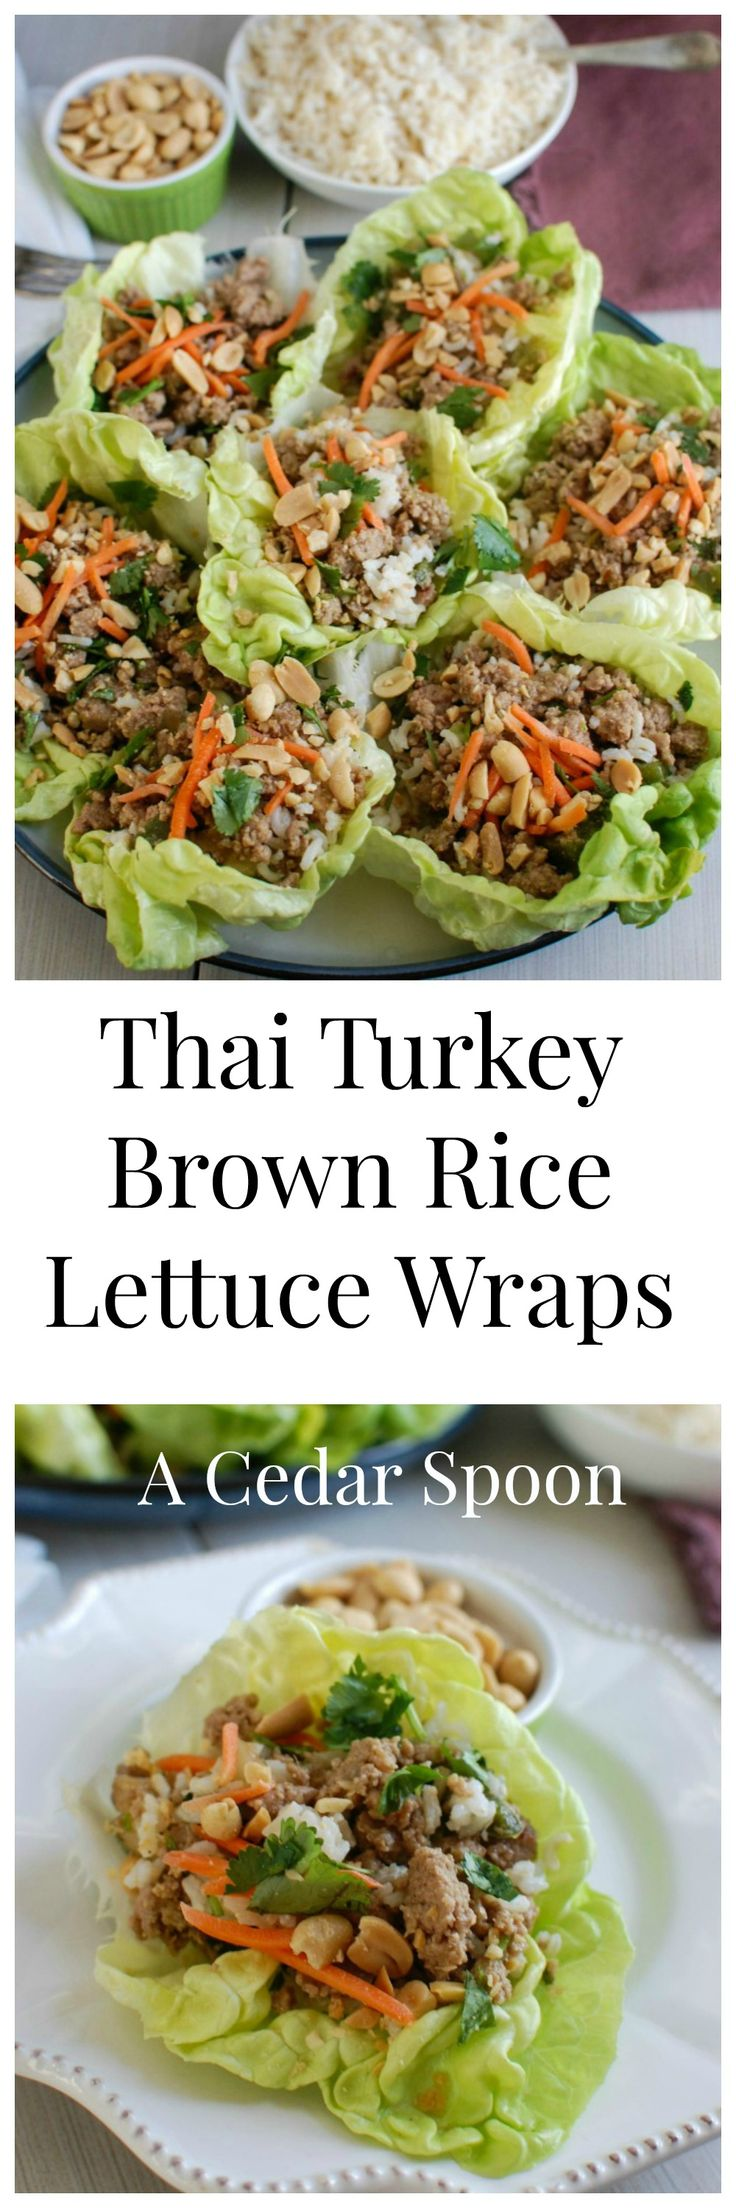 Thai Turkey Brown Rice Lettuce Wraps - the best